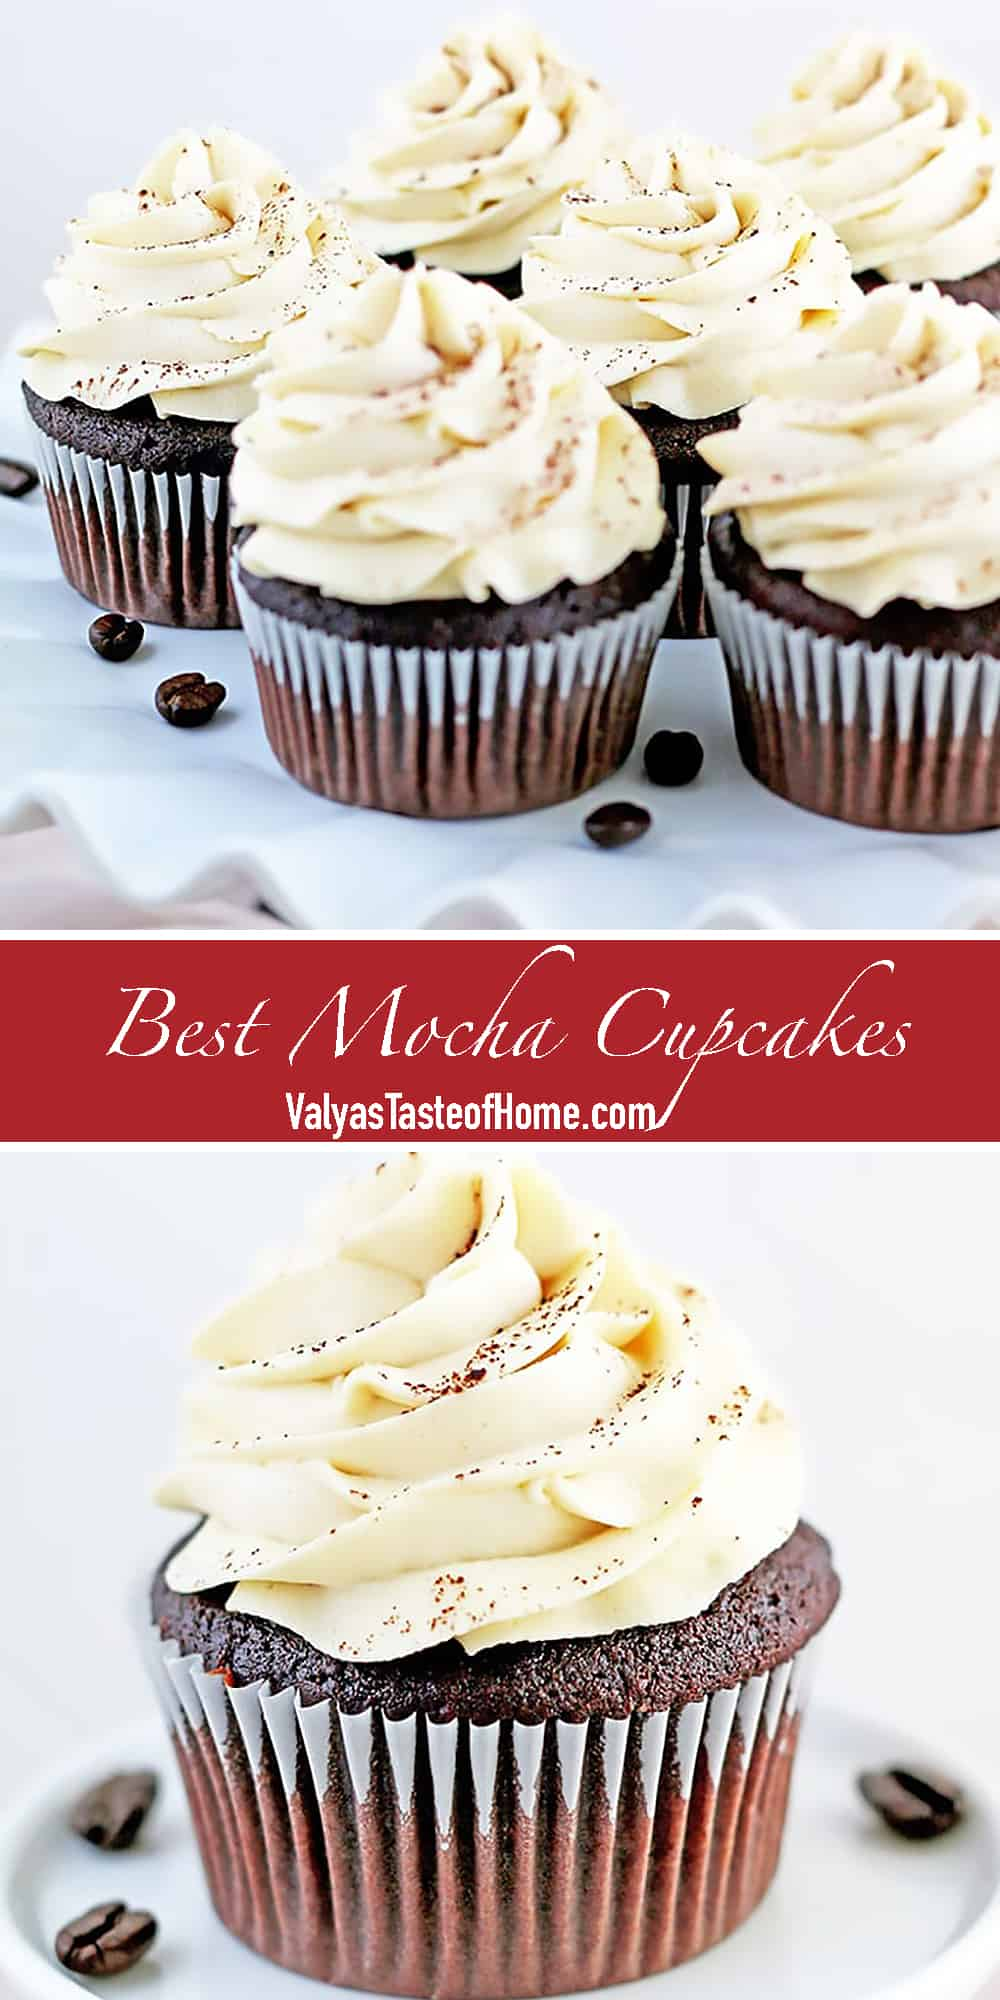 Coffee and chocolate are calling my name! Who can relate? Satisfy both cravings in two bites of this incredibly delicious Mocha Cupcakes Recipe.